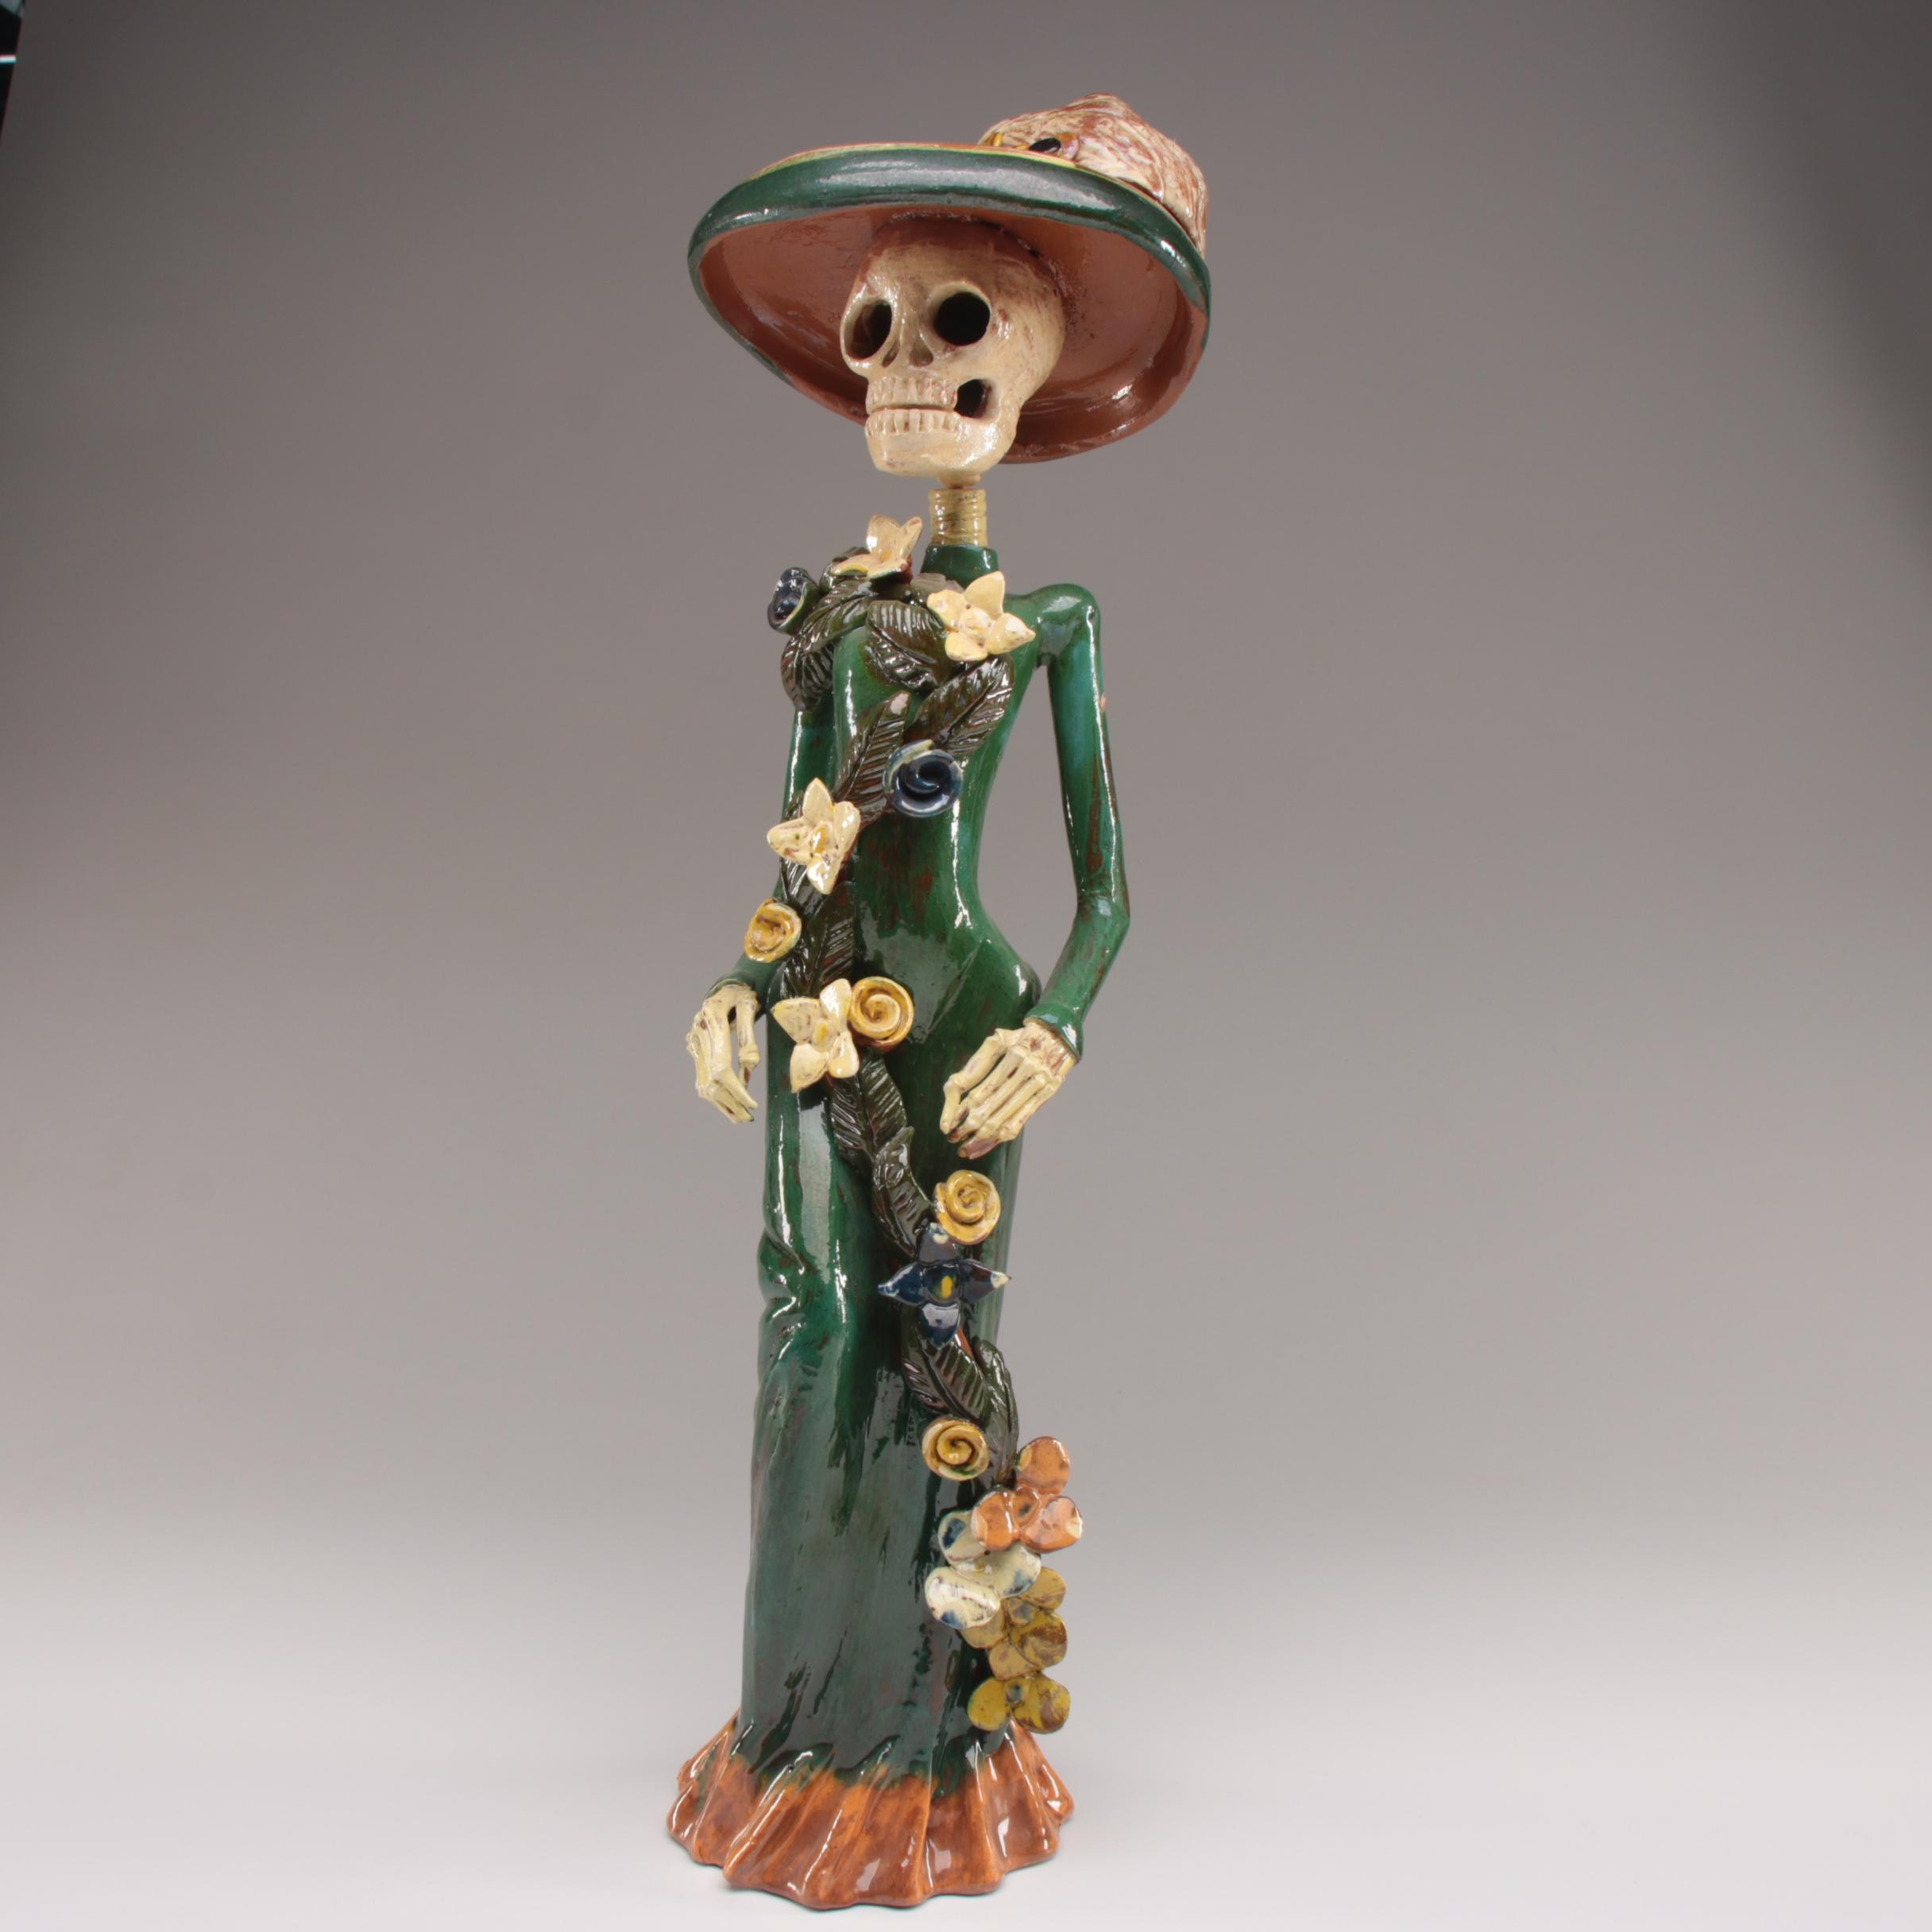 Day of the Dead Mexican Ceramic Sculpture